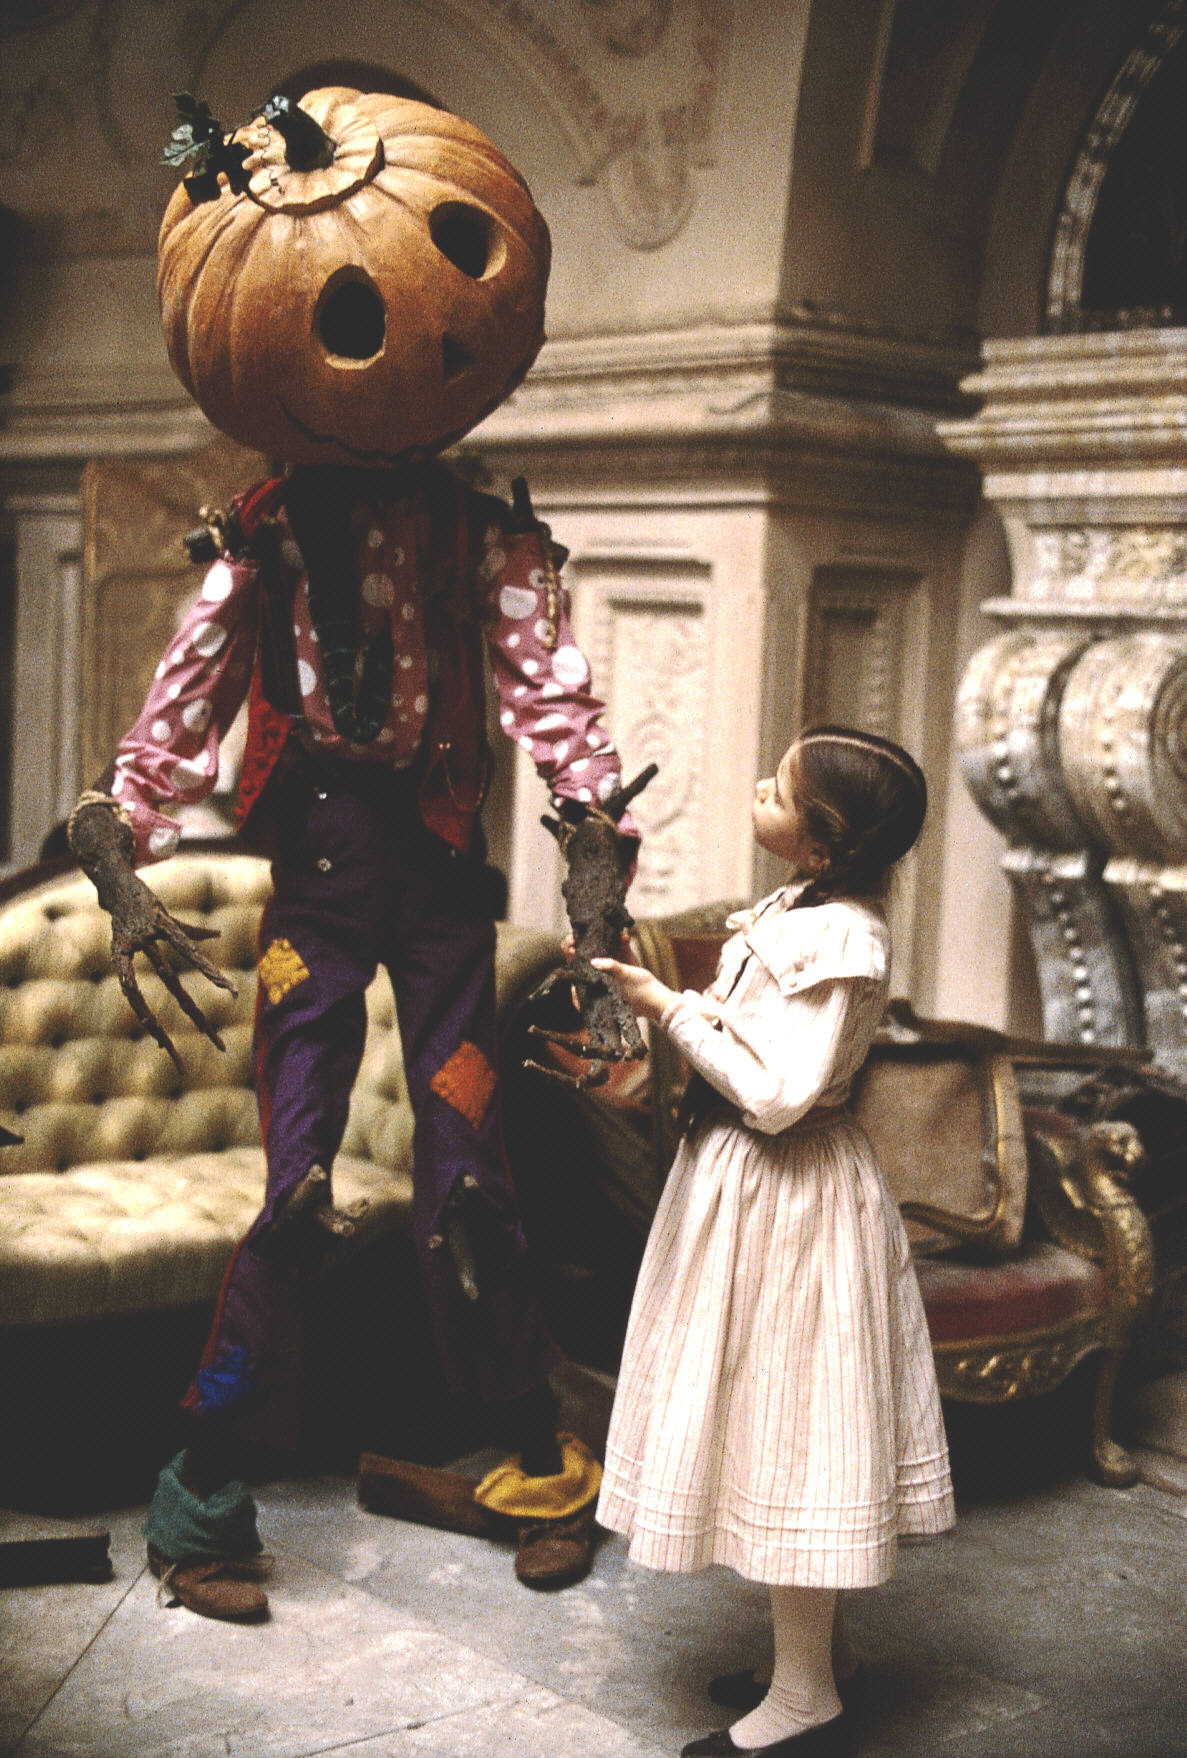 helenofdestroy:   Return to Oz  this movie always scared the shit out of me as a kid